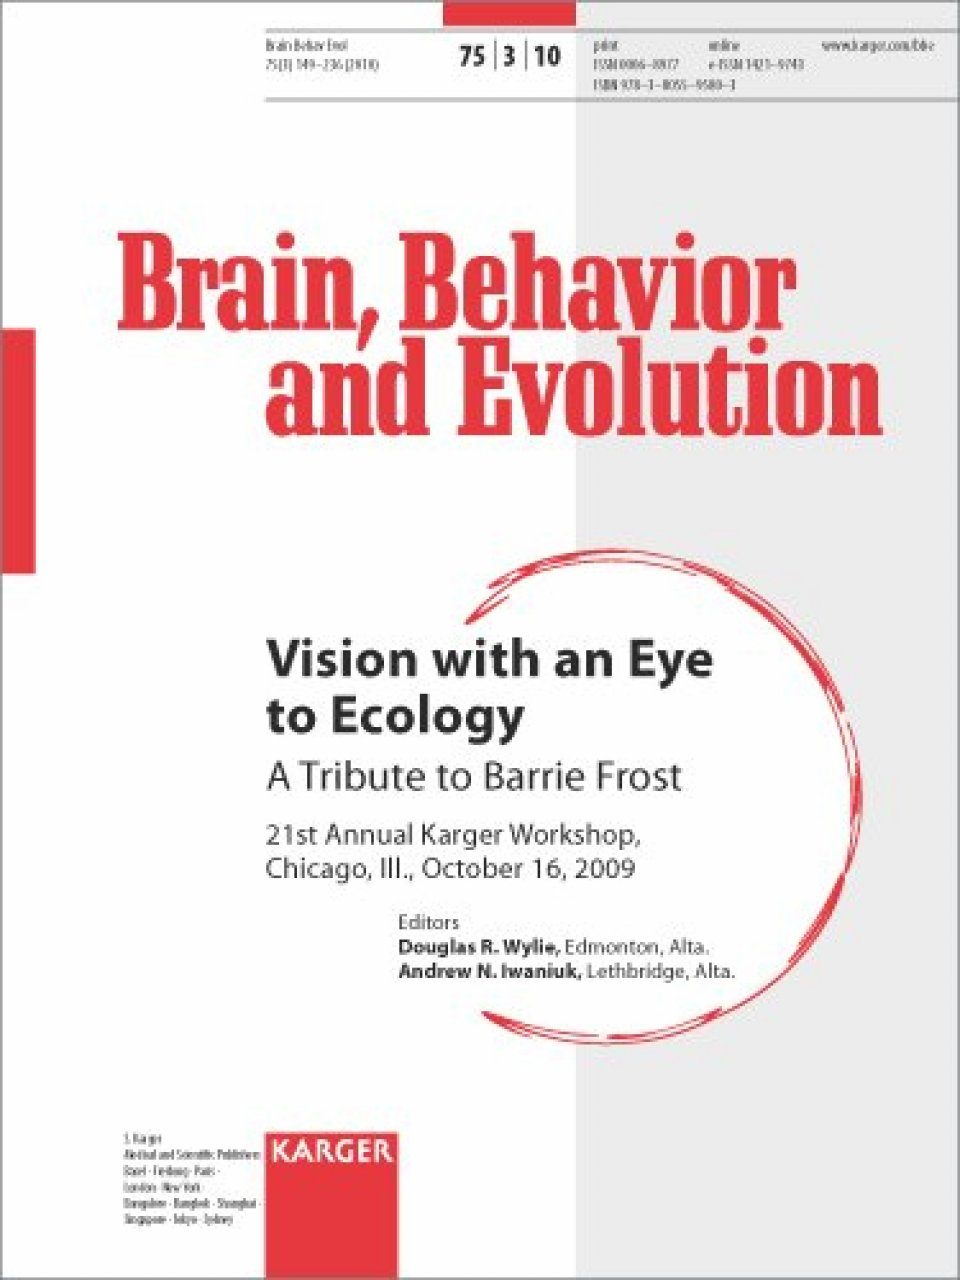 Vision with an Eye to Ecology